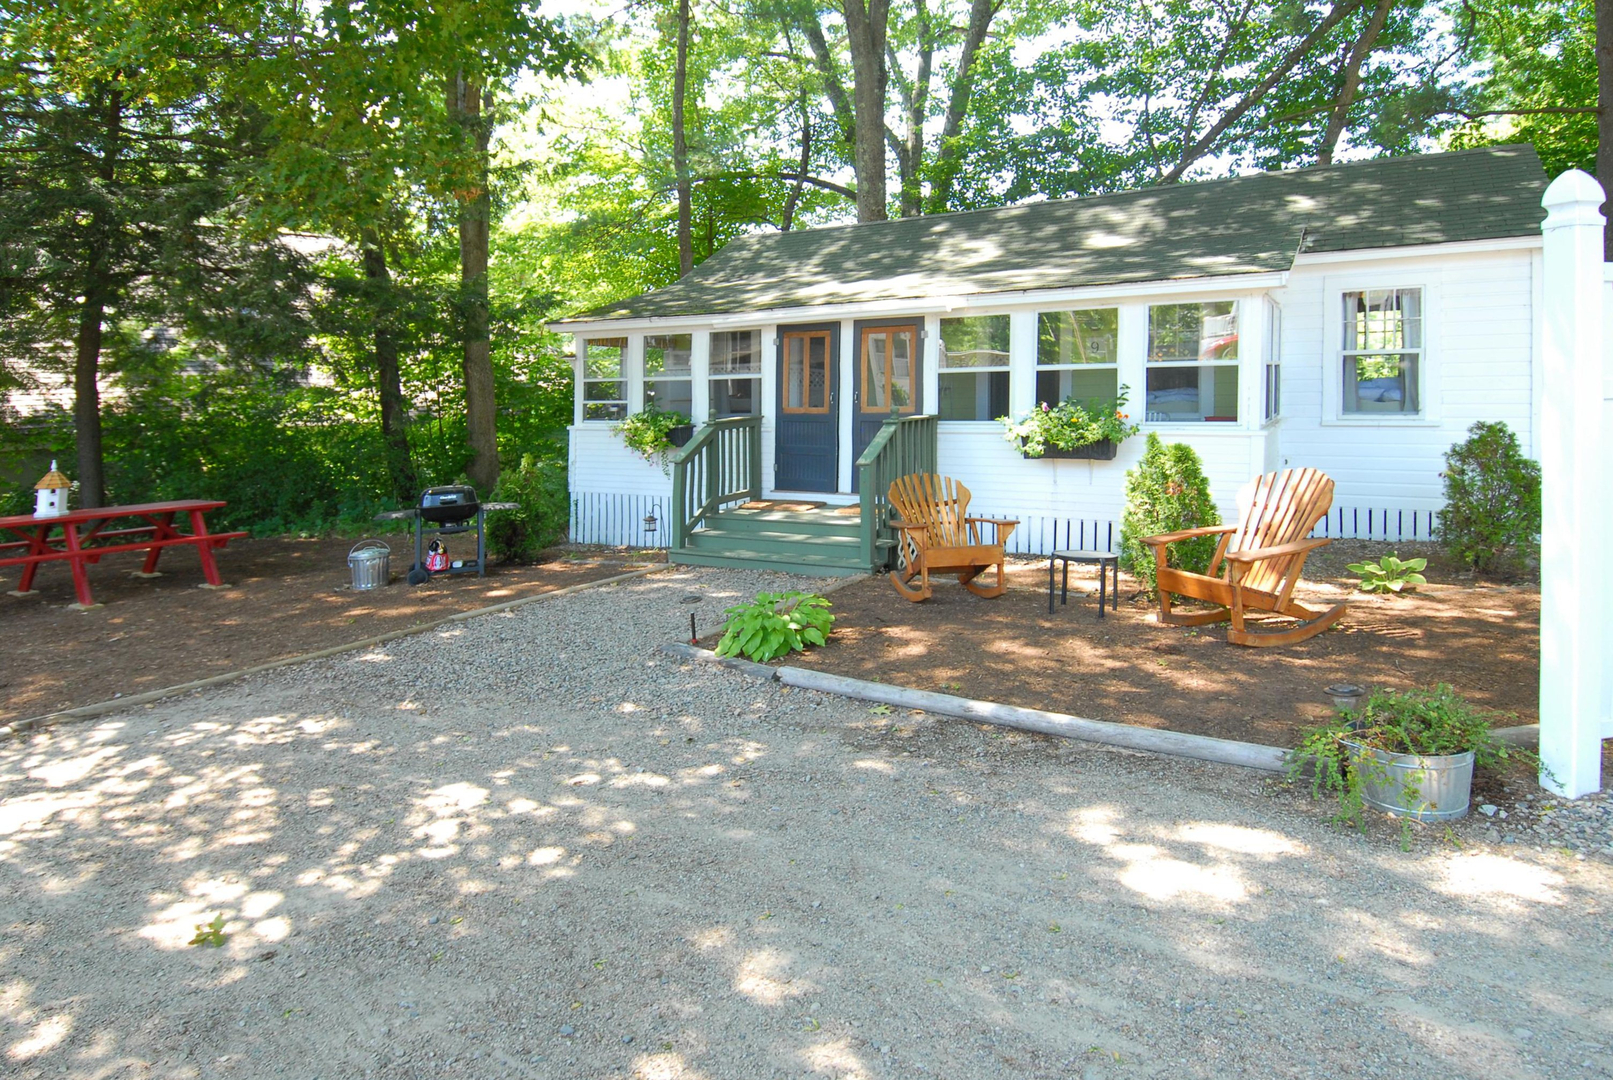 The Cottages Of Wolfeboro - Wolfeboro, NH 03894 - (603)569-9999 | ShowMeLocal.com